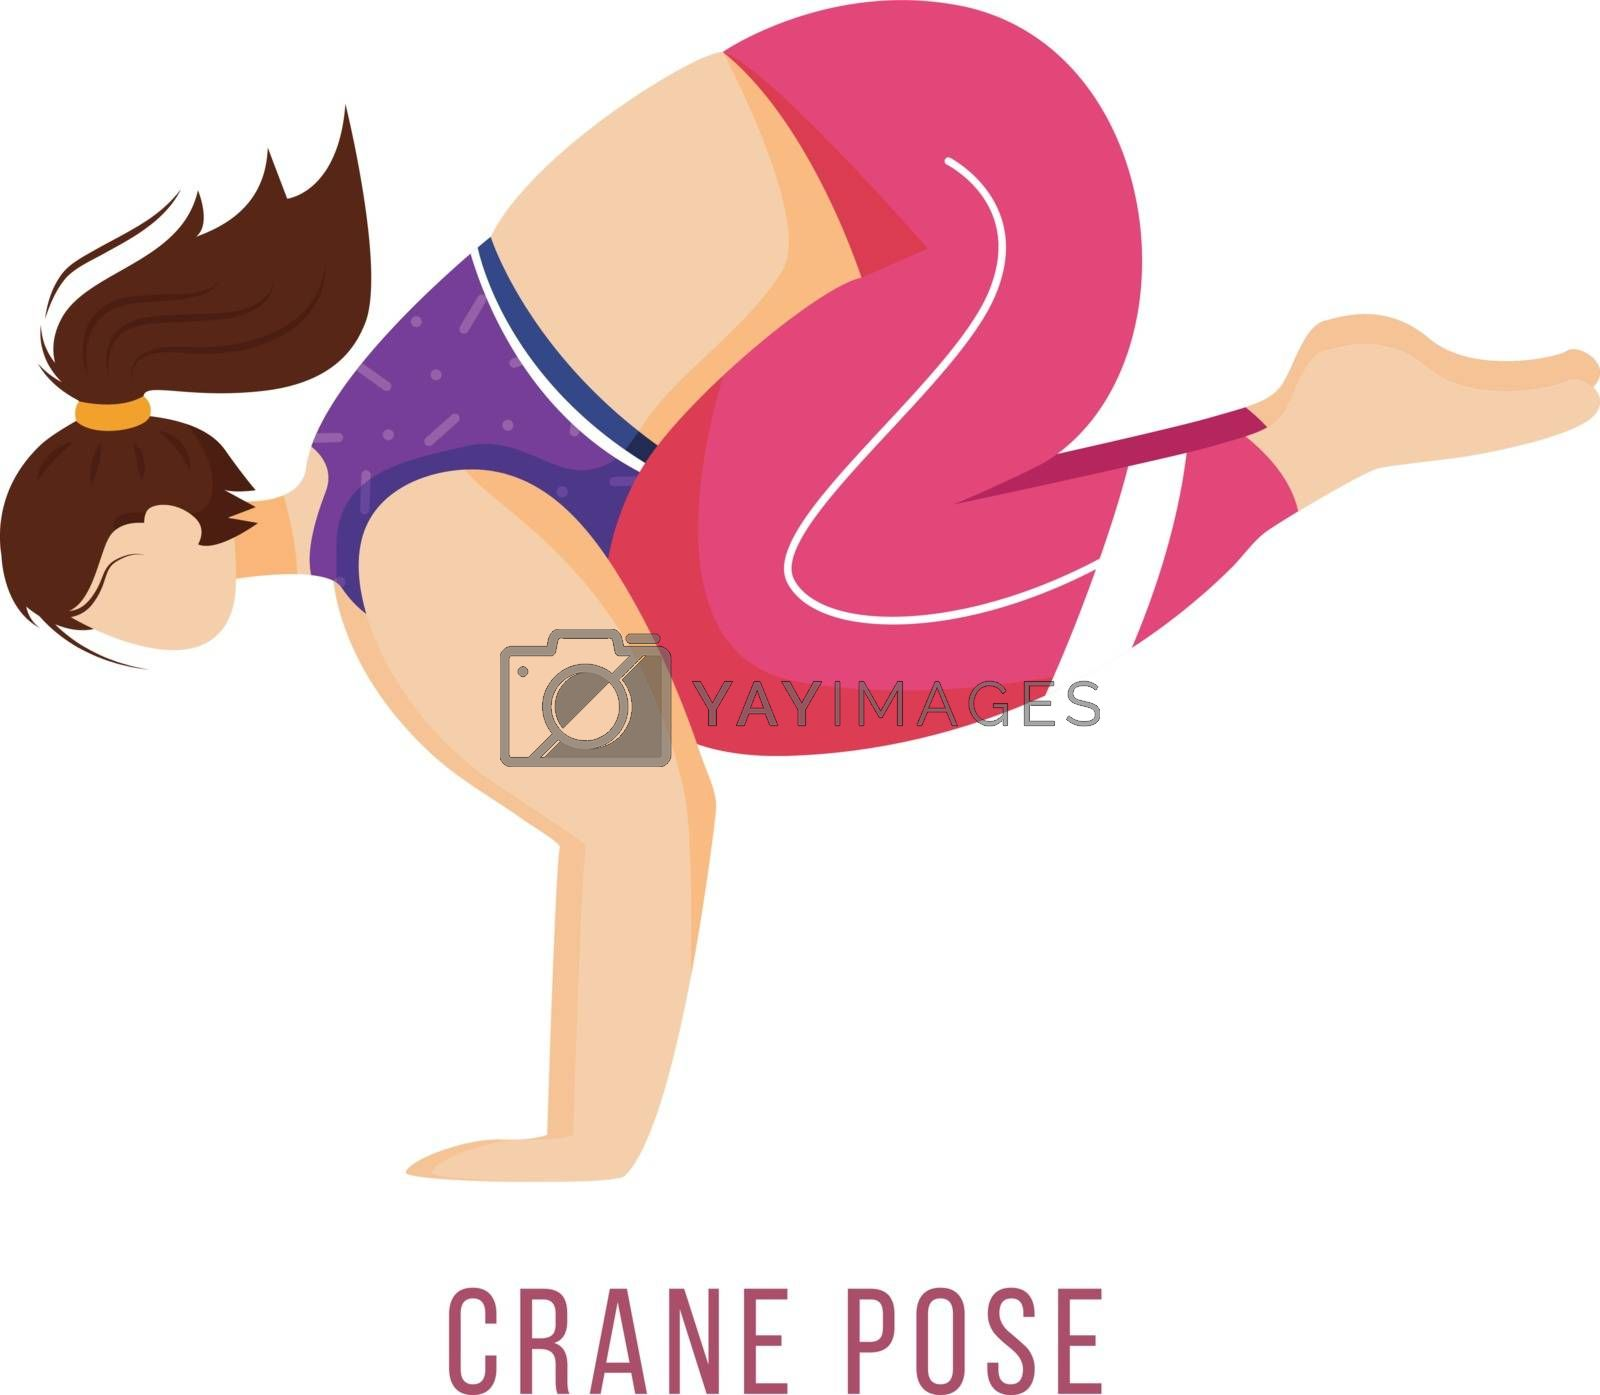 Crane pose flat vector illustration. Bakasana. Caucausian woman performing yoga posture in pink and purple sportswear. Workout. Physical exercise. Isolated cartoon character on white background